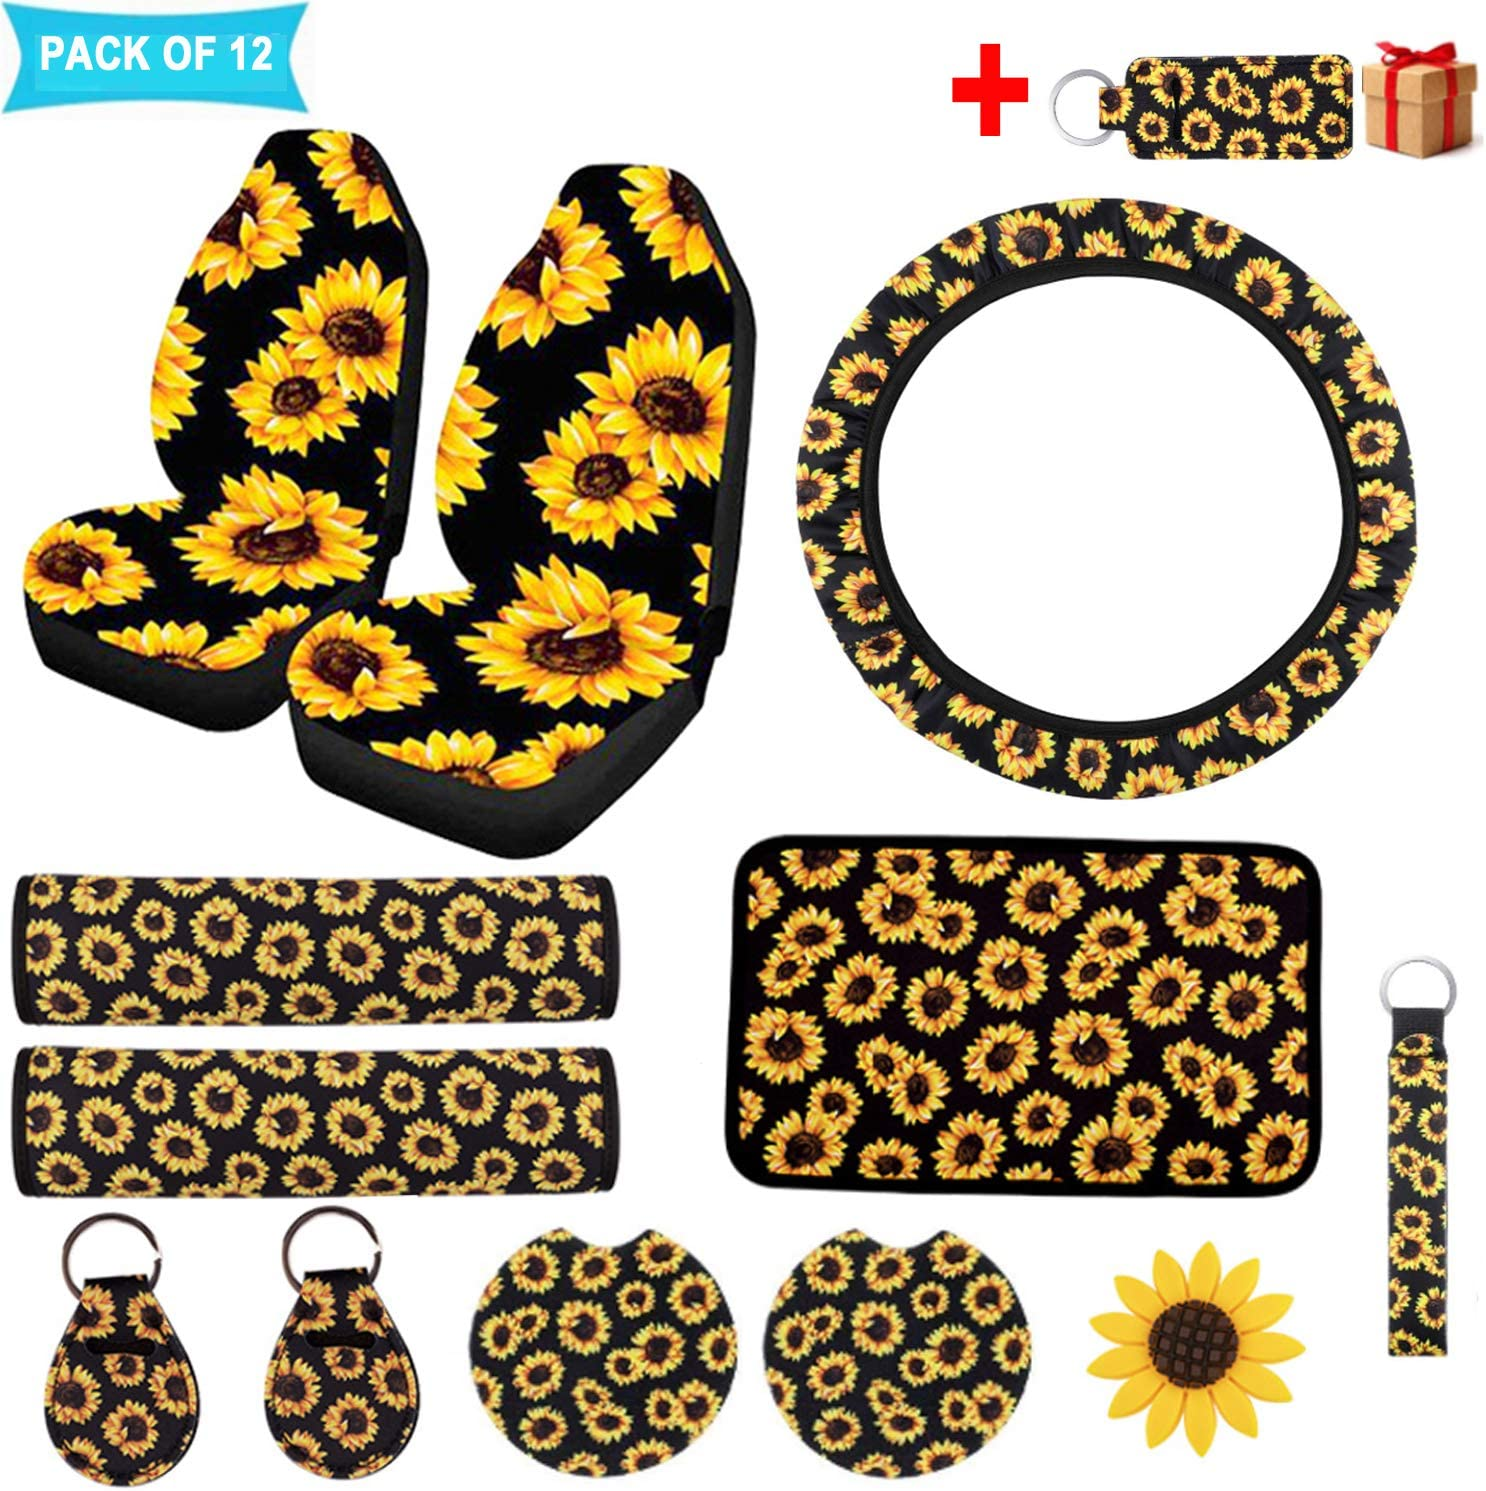 12 PCS Sunflower Directly managed store Car Accessories Seat 2PCS Front Luxury goods Sunflowers